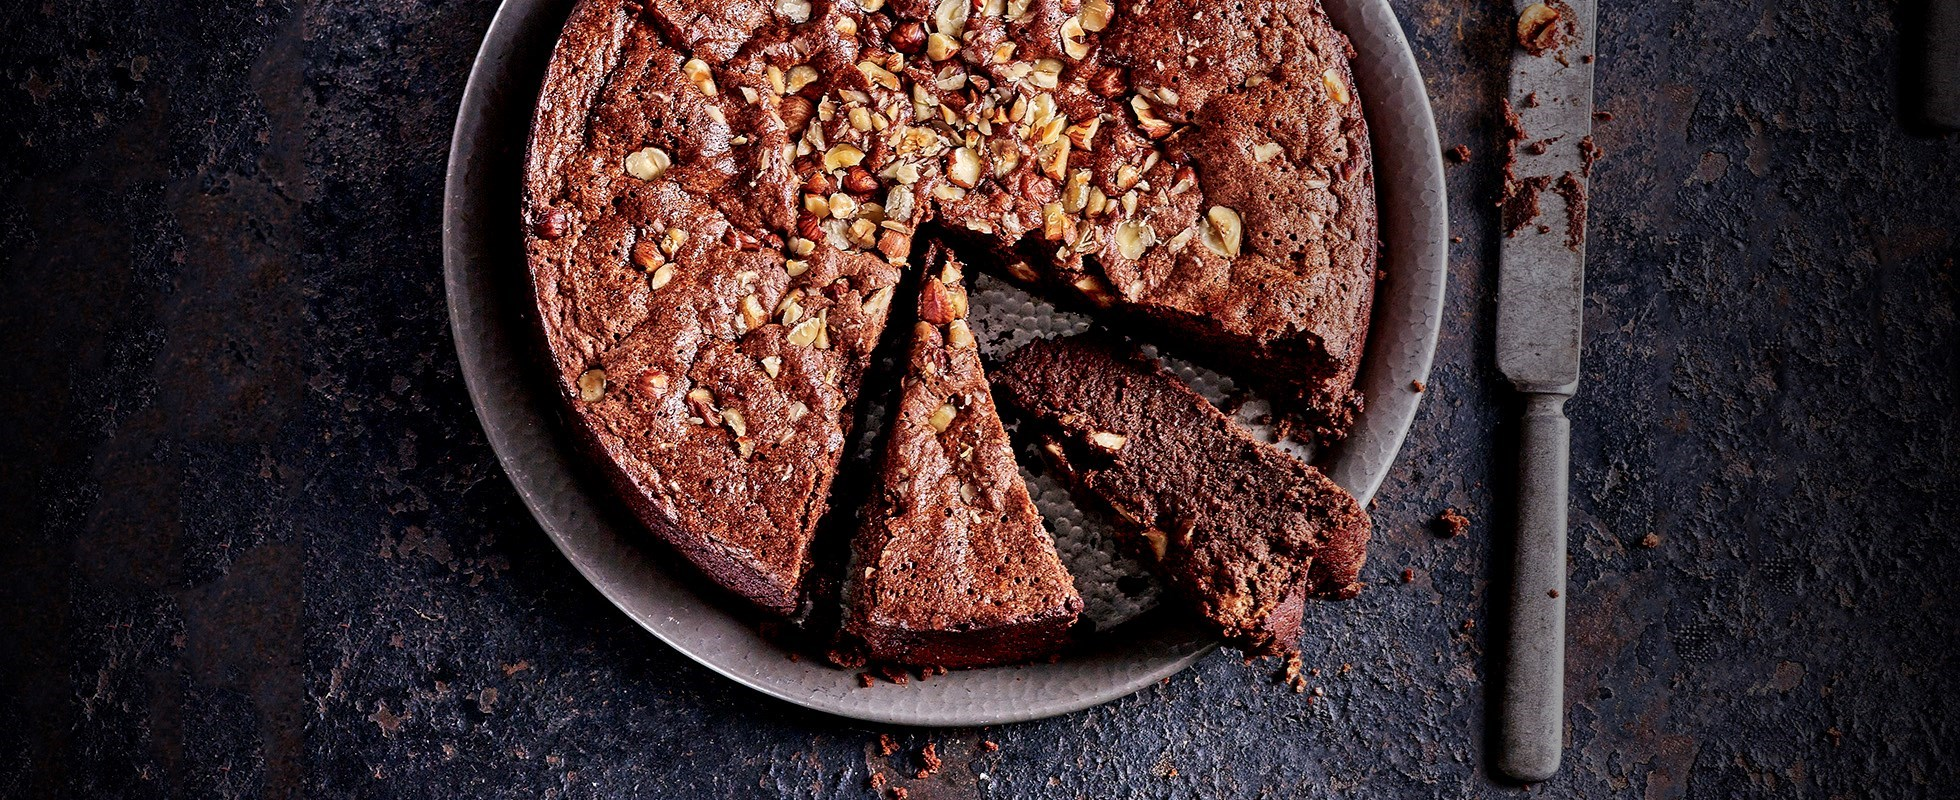 sunken nutella cake - Baileys recipes